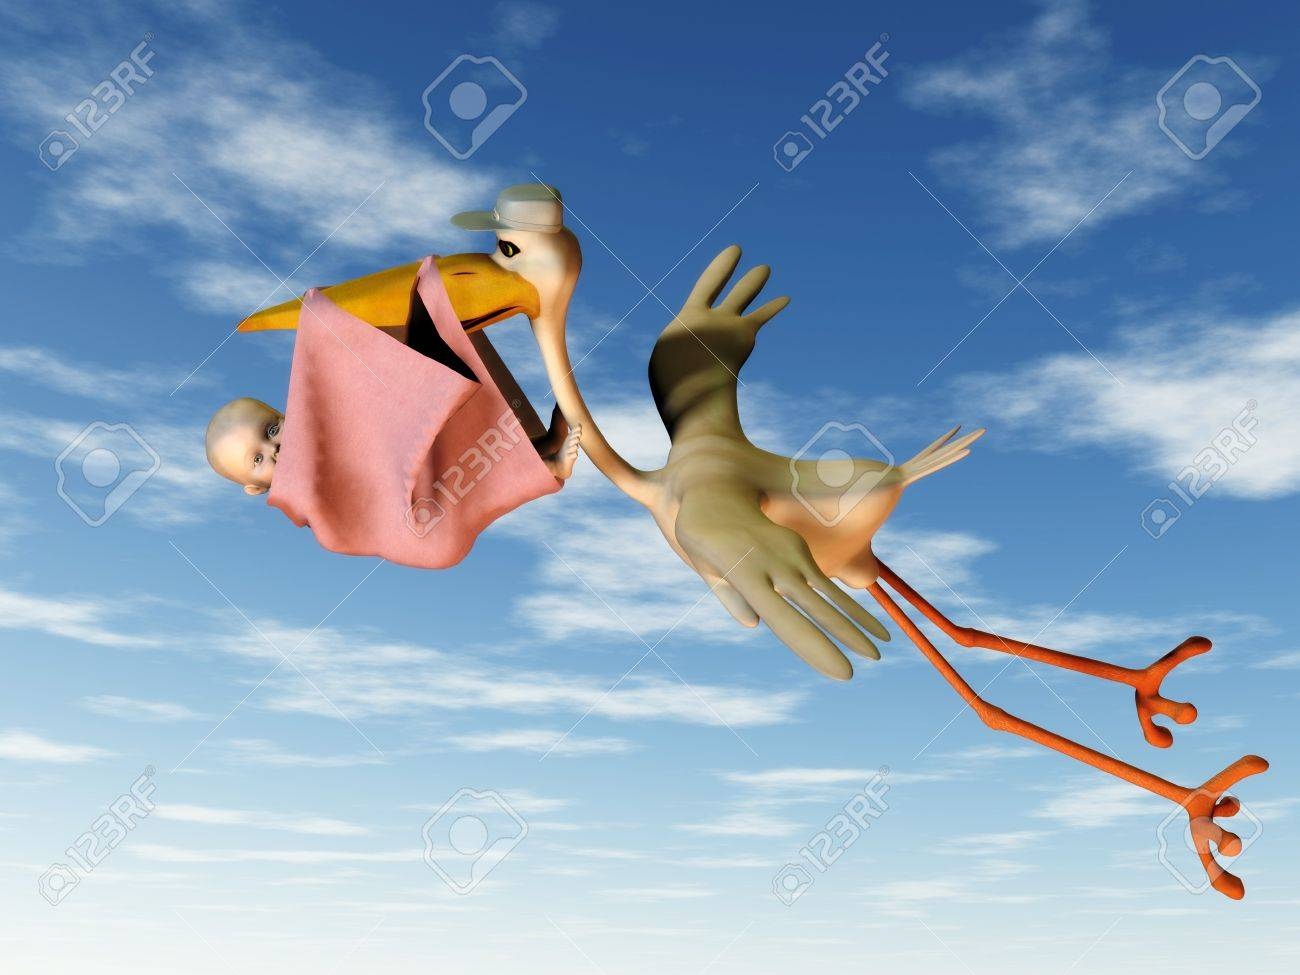 A flying stork holding a baby in a blanket in its beak. Stock Photo - 4169329